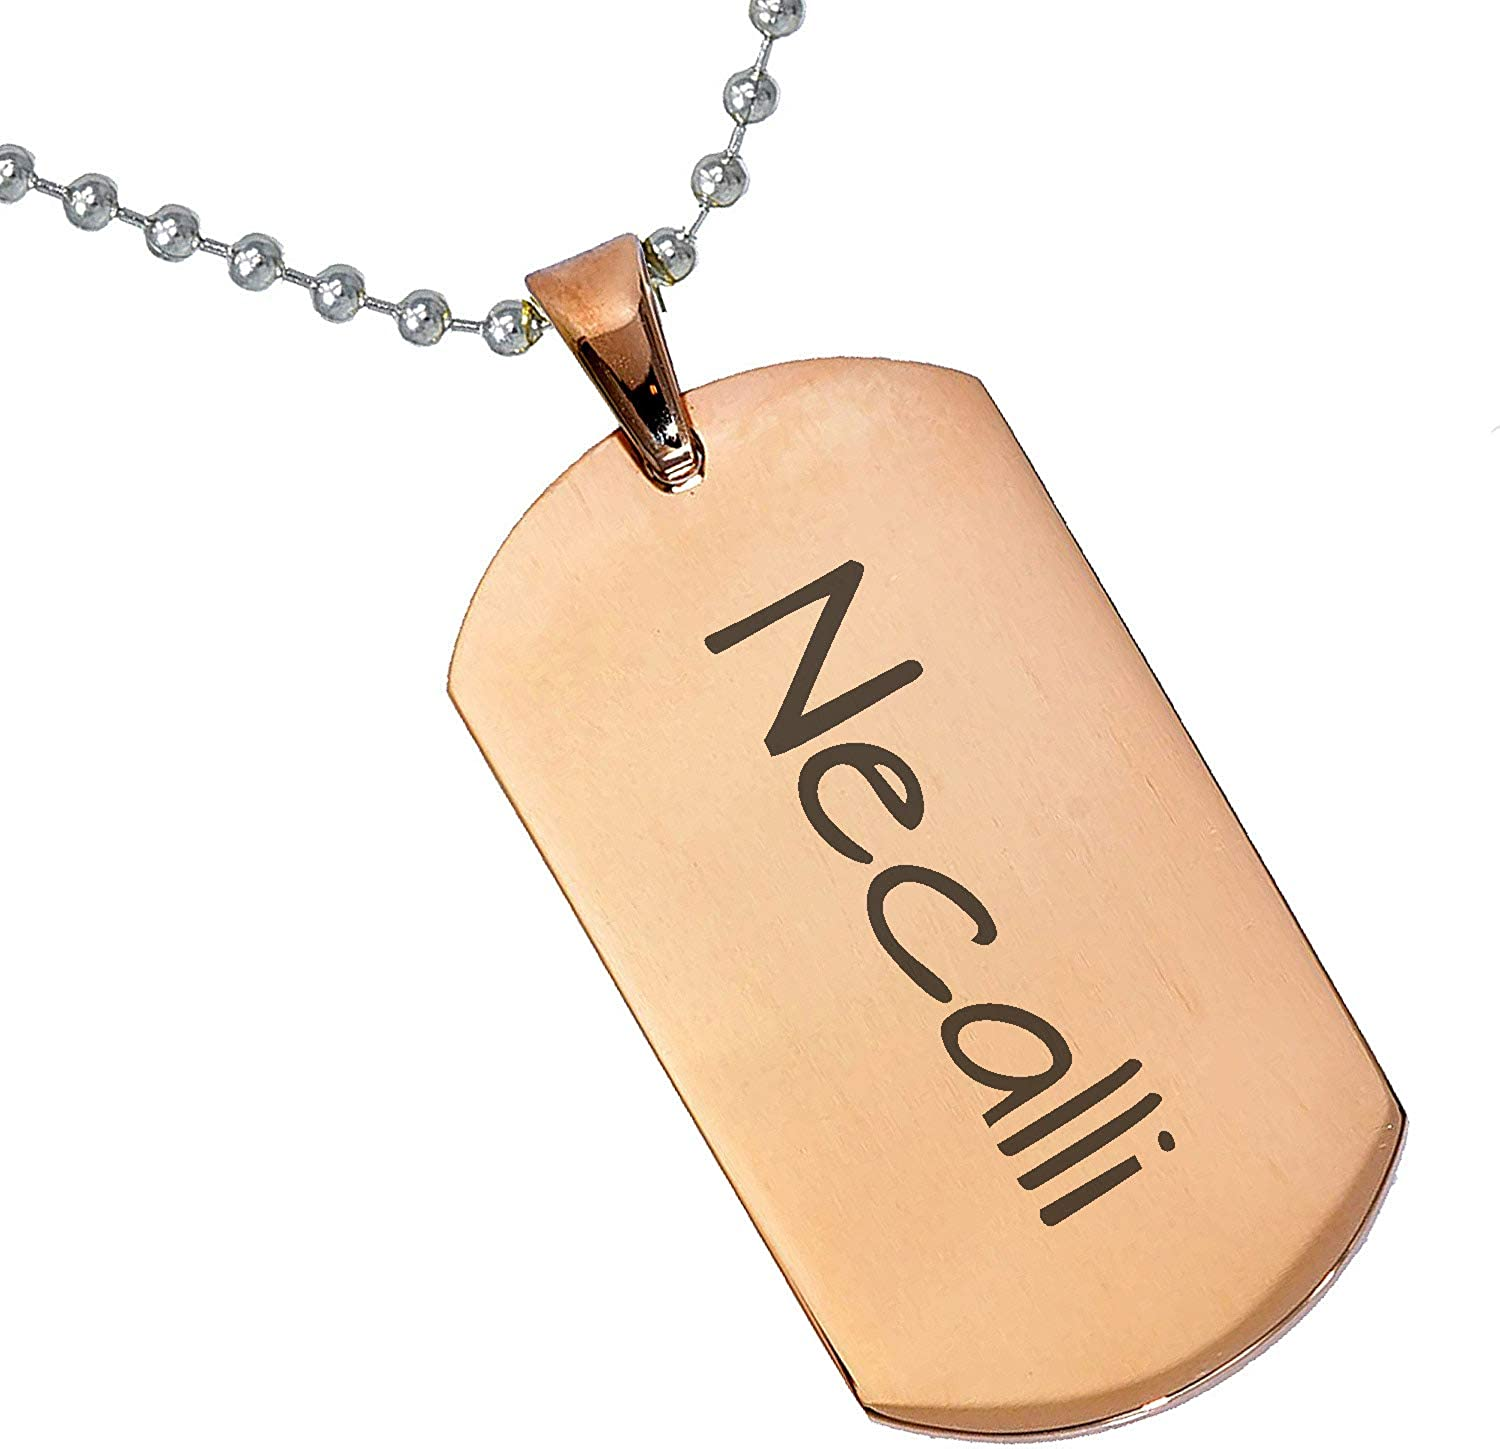 Stainless Steel Silver Gold Black Rose Gold Color Baby Name Necalli Engraved Personalized Gifts For Son Daughter Boyfriend Girlfriend Initial Customizable Pendant Necklace Dog Tags 24 Ball Chain